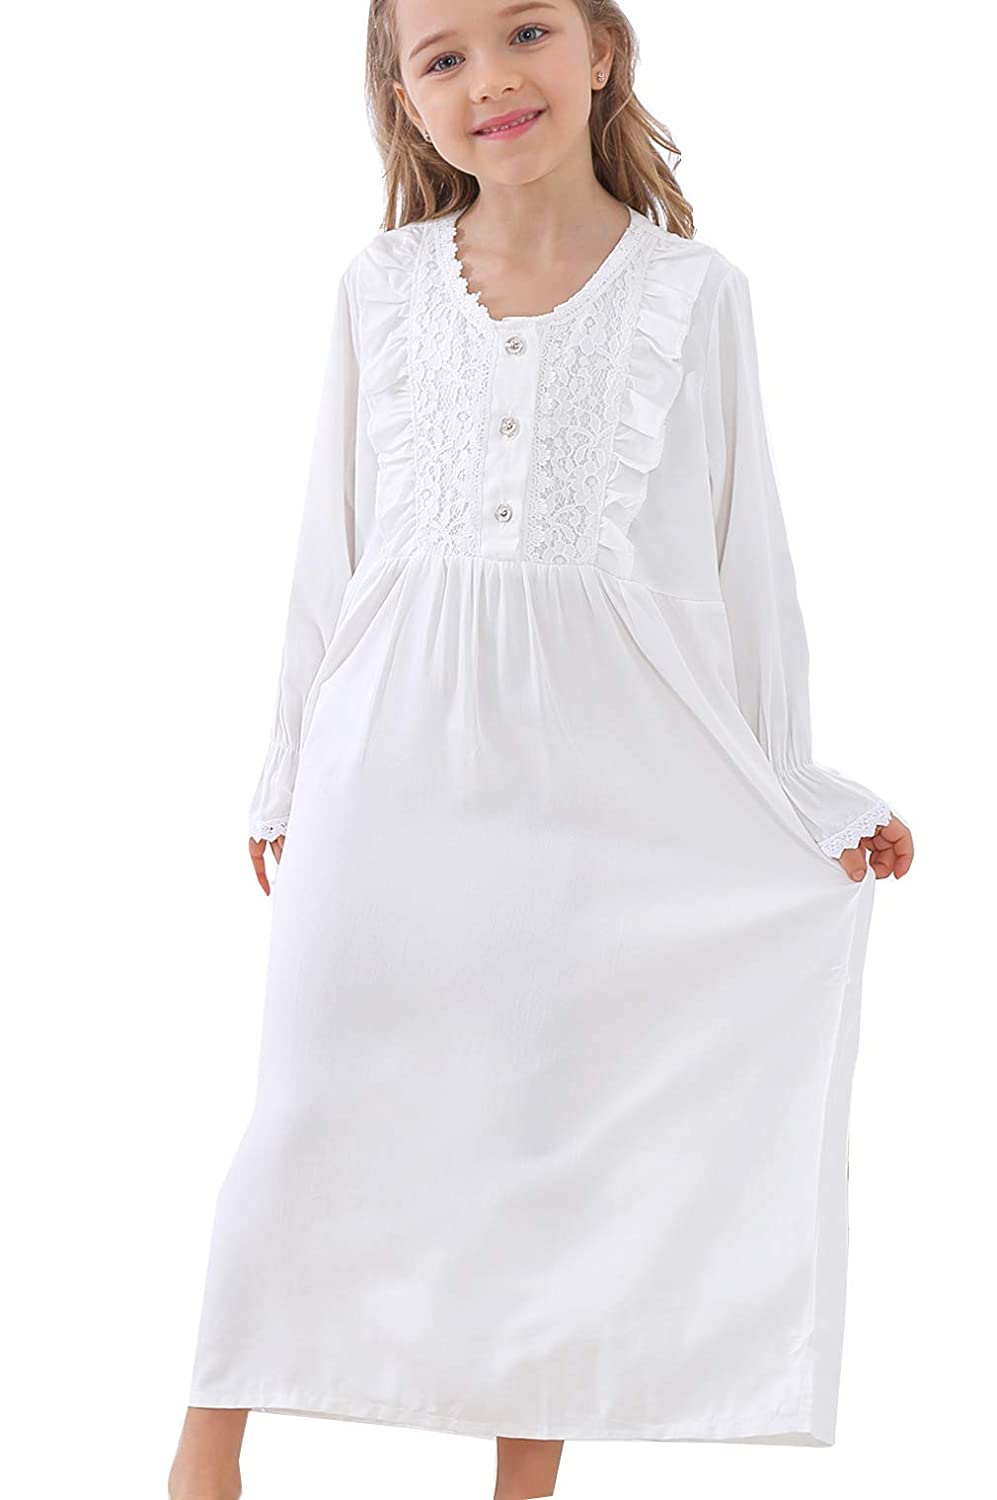 Victorian Kids Costumes & Shoes- Girls, Boys, Baby, Toddler Girls Lovely Lace Nightgowns Long Sleeve Cotton Sleepwear Toddler 3-10 Years $23.99 AT vintagedancer.com